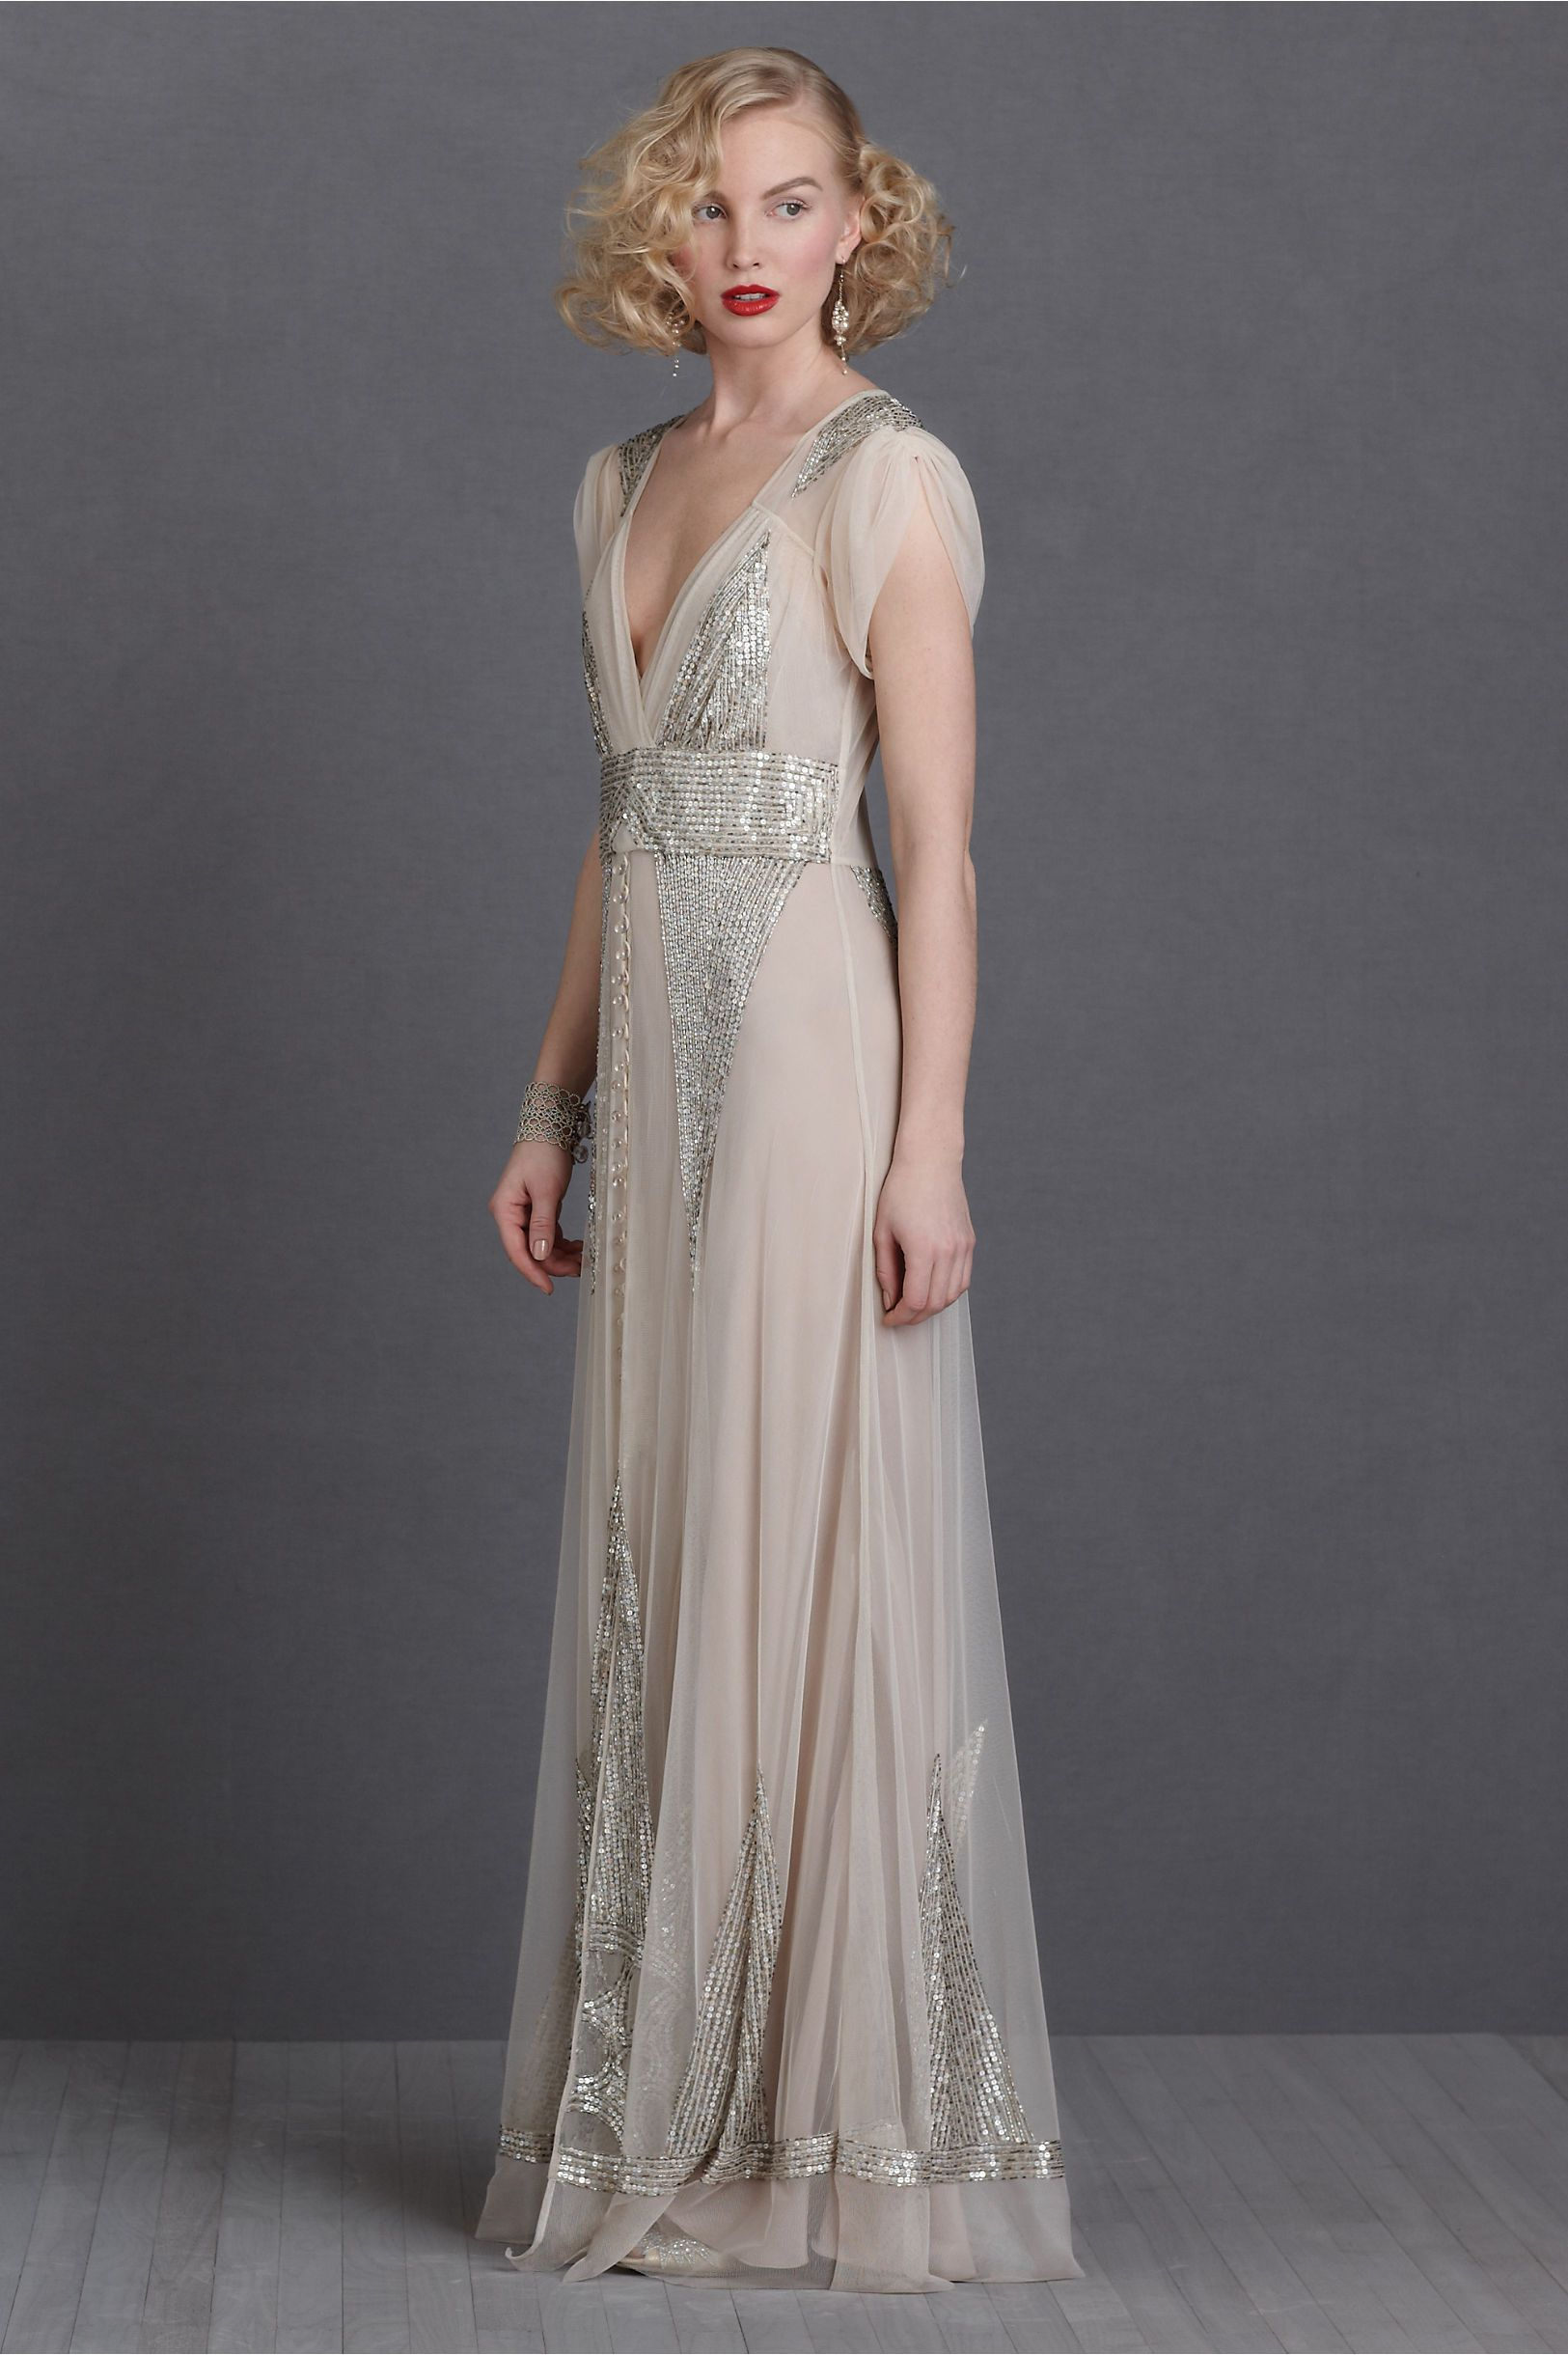 Anna Sui Aiguille Gown (I don't want to be married, I